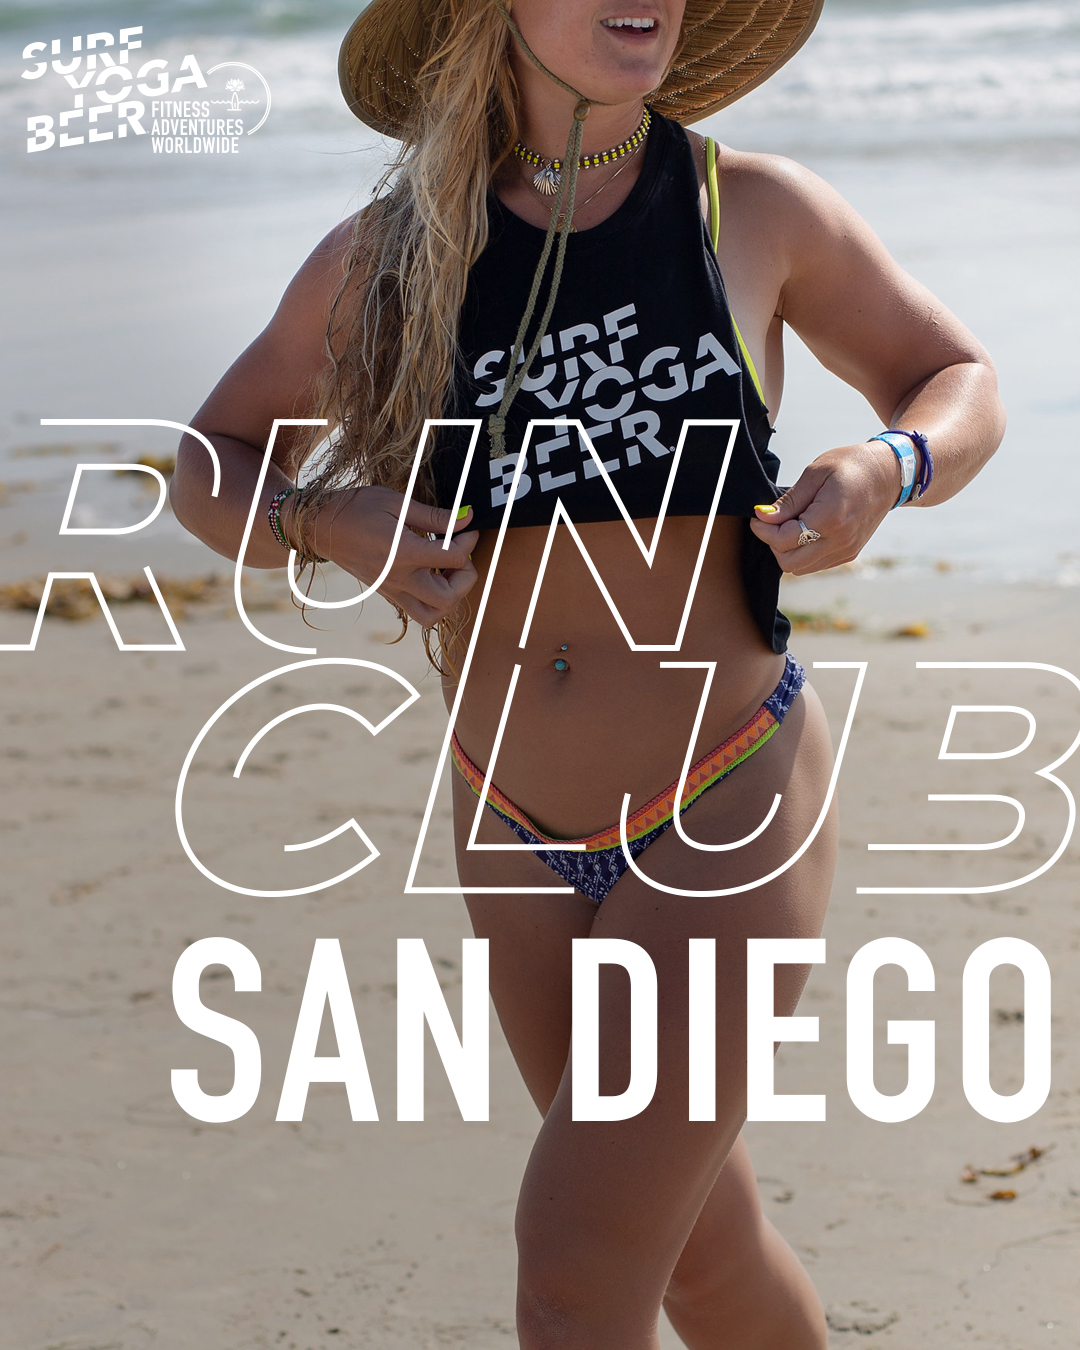 RUN_CLUB_Promo__SanDiego_1080x1350_v1.jpg